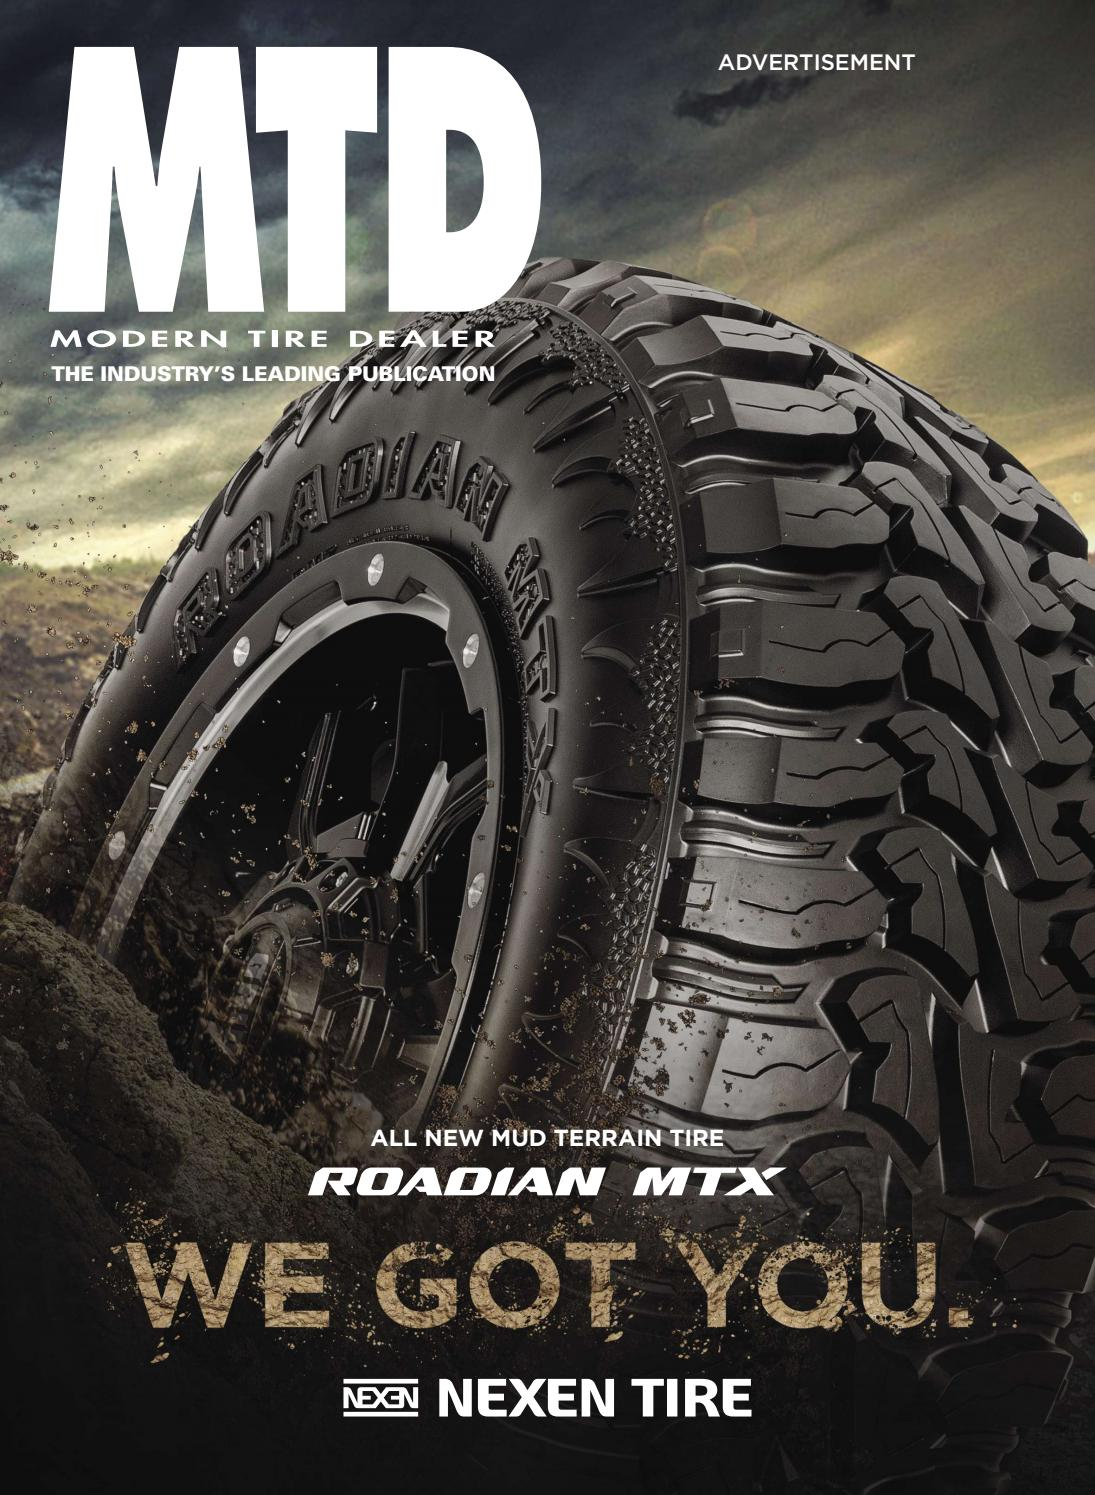 Modern Tire Dealer   April 40 by 40 Missions Media   issuu